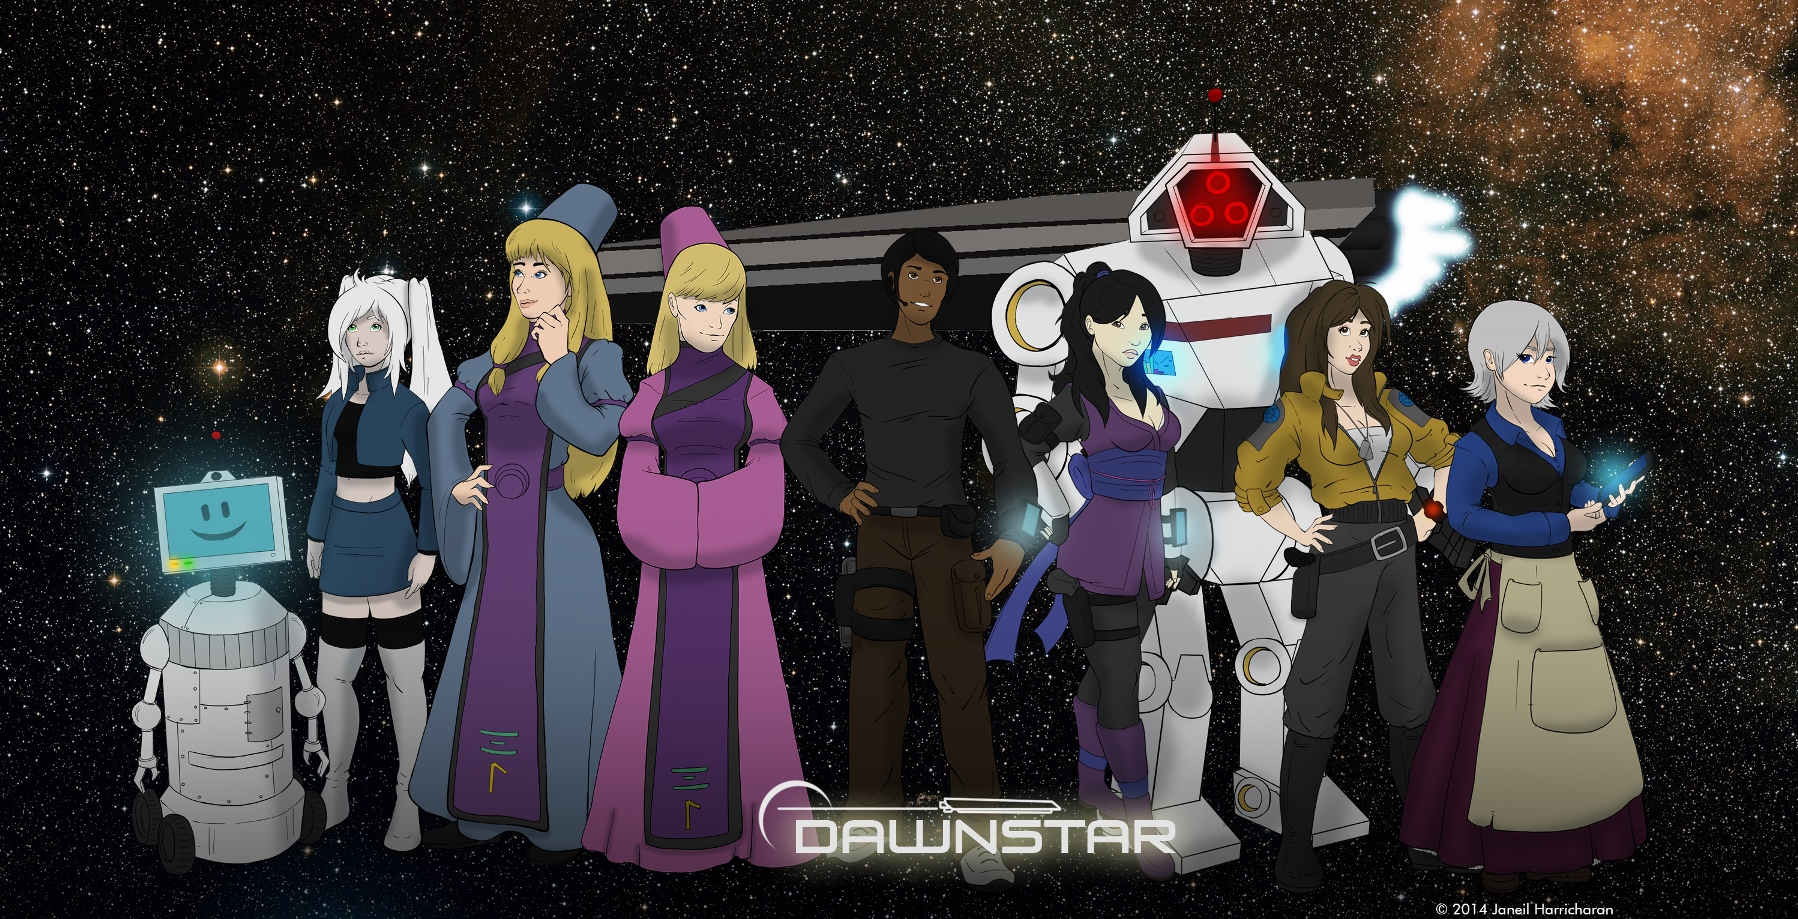 Dawnstar Character Group - 2014